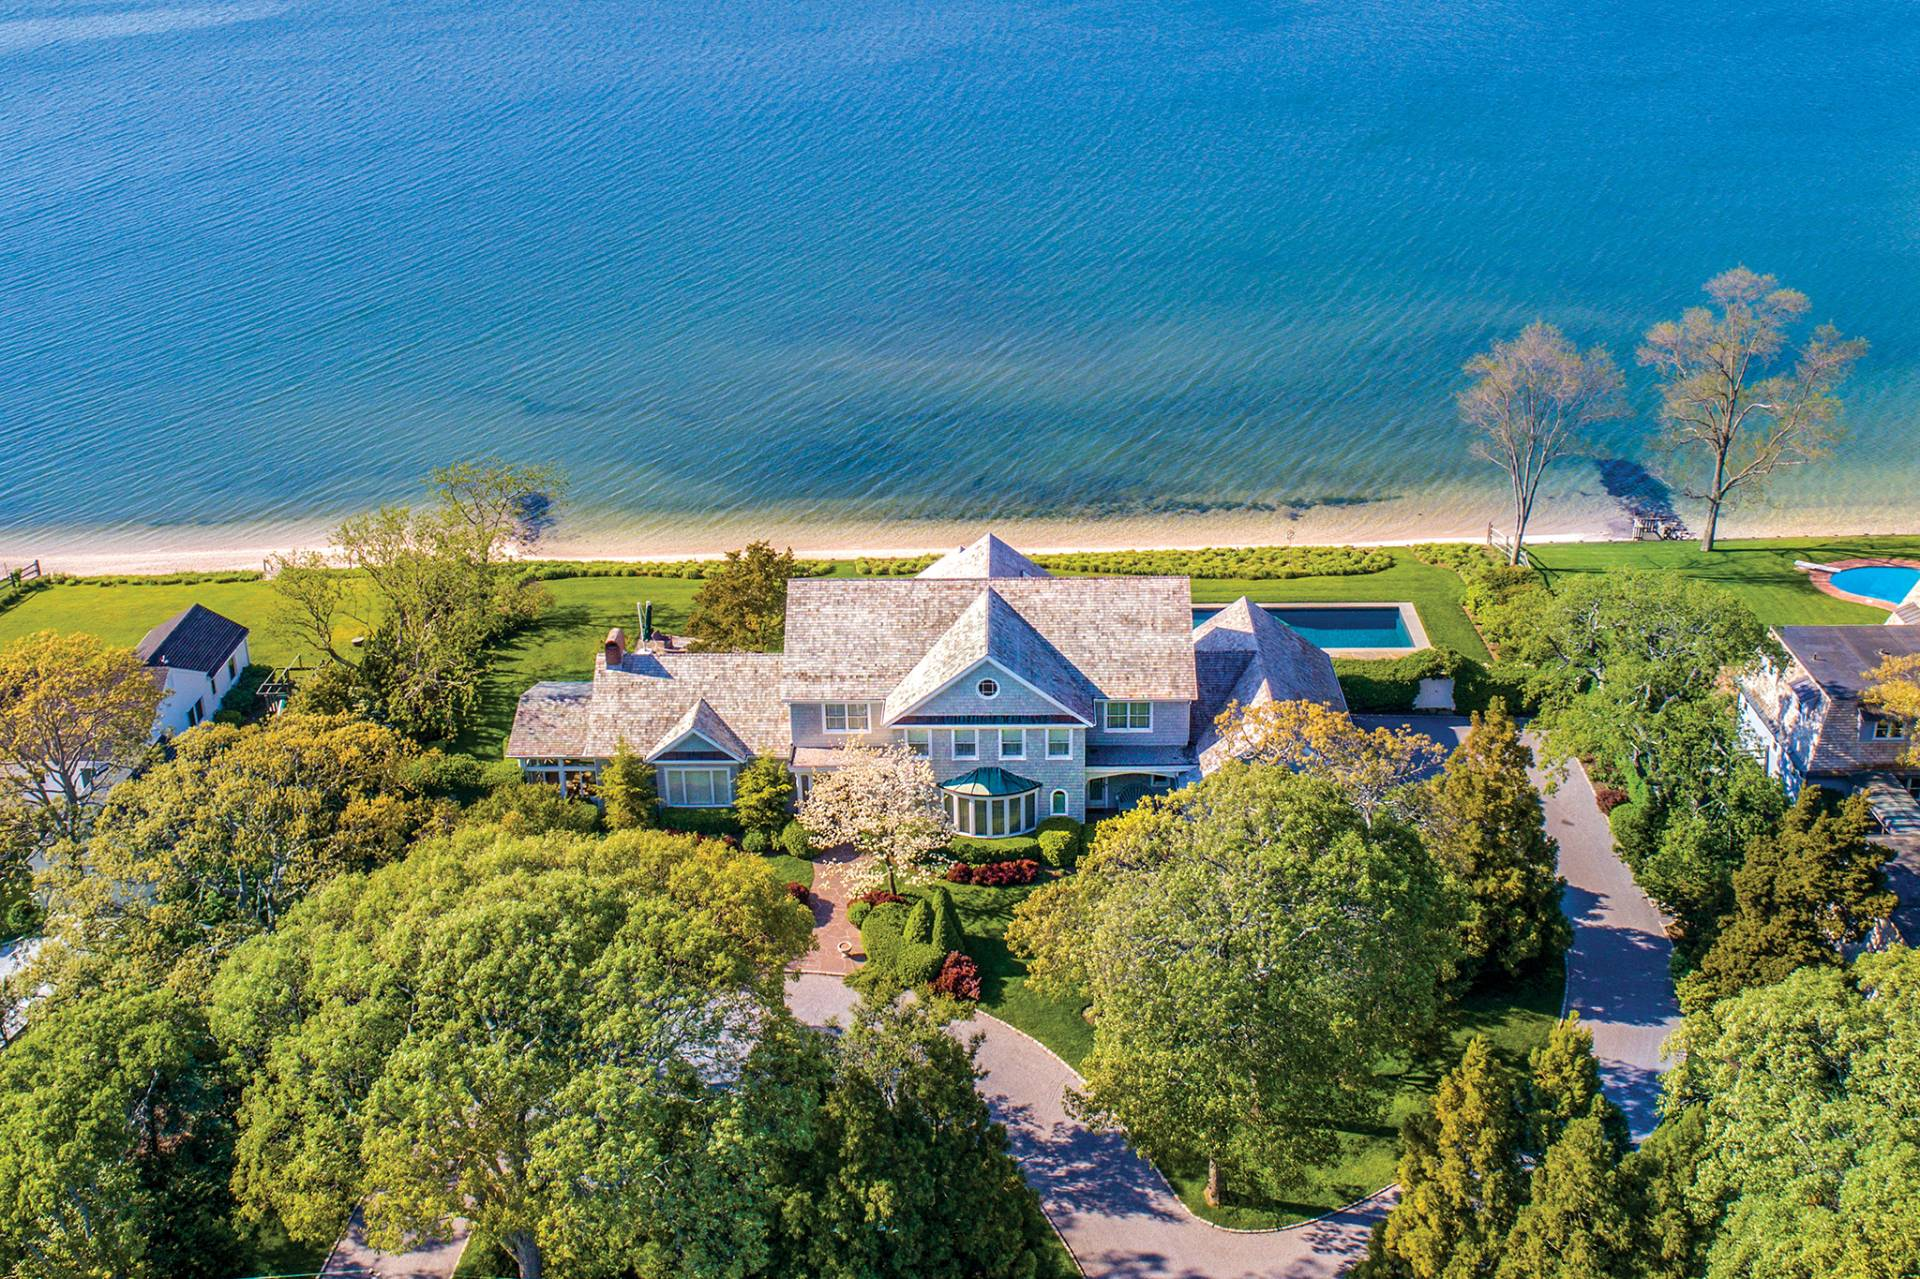 Single Family Home for Sale at The Waterfront Jewel 37 Noyack Bay Avenue, Sag Harbor, New York